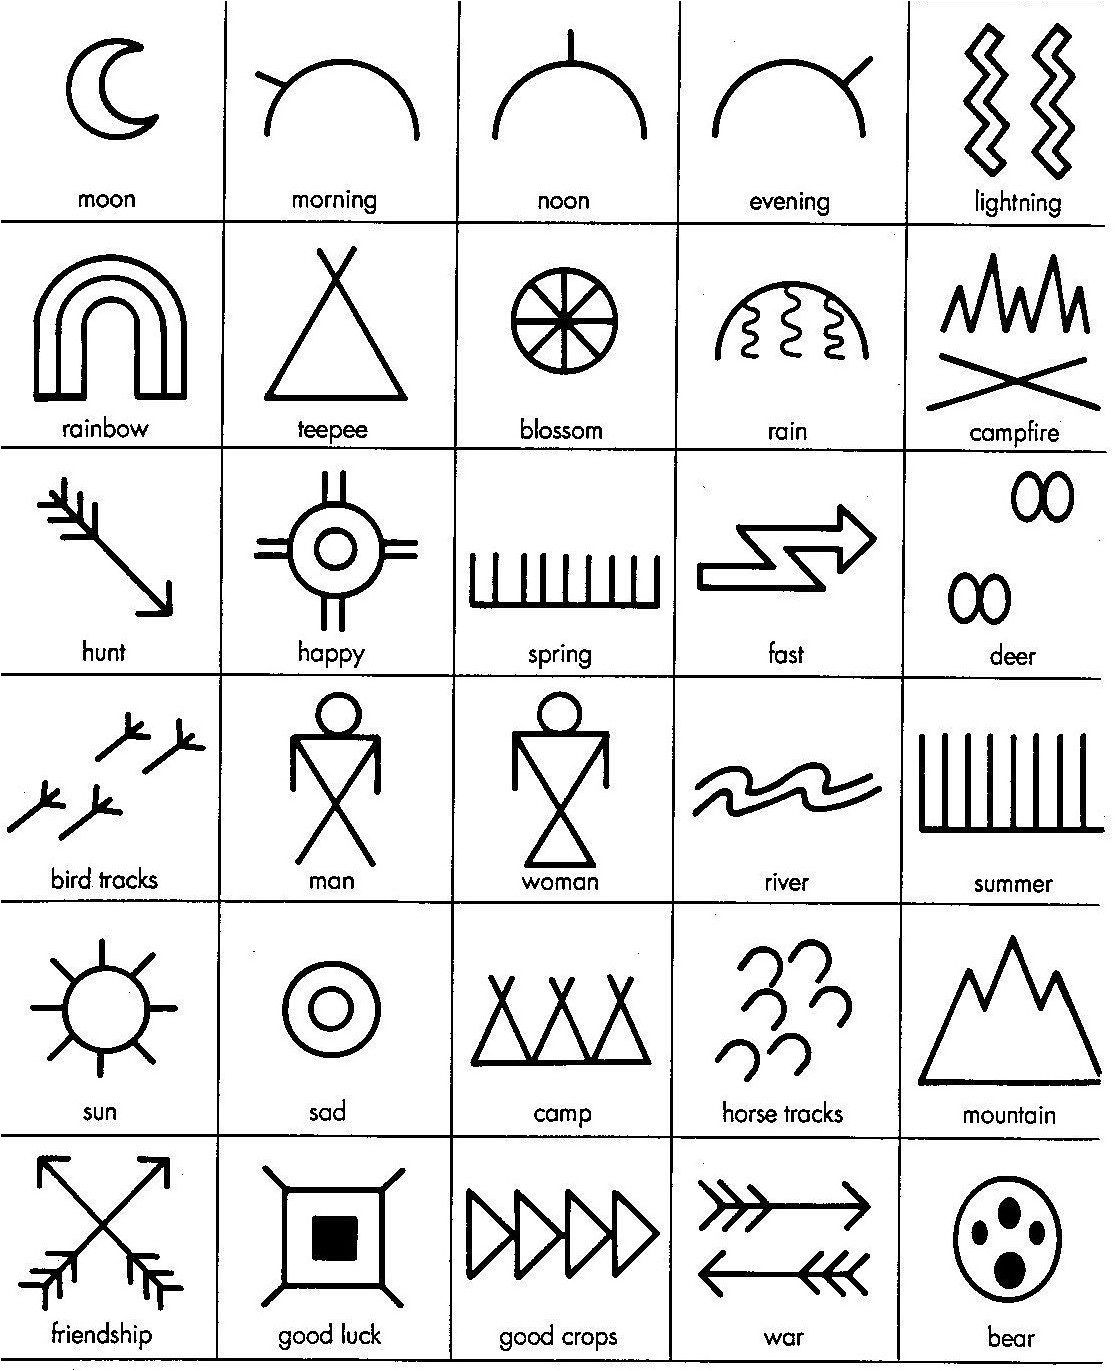 Native American Indian Symbols Why Not Visit Our Site For More Inspirational Tattoo Ideas American Symbols Native American Symbols Indian Symbols